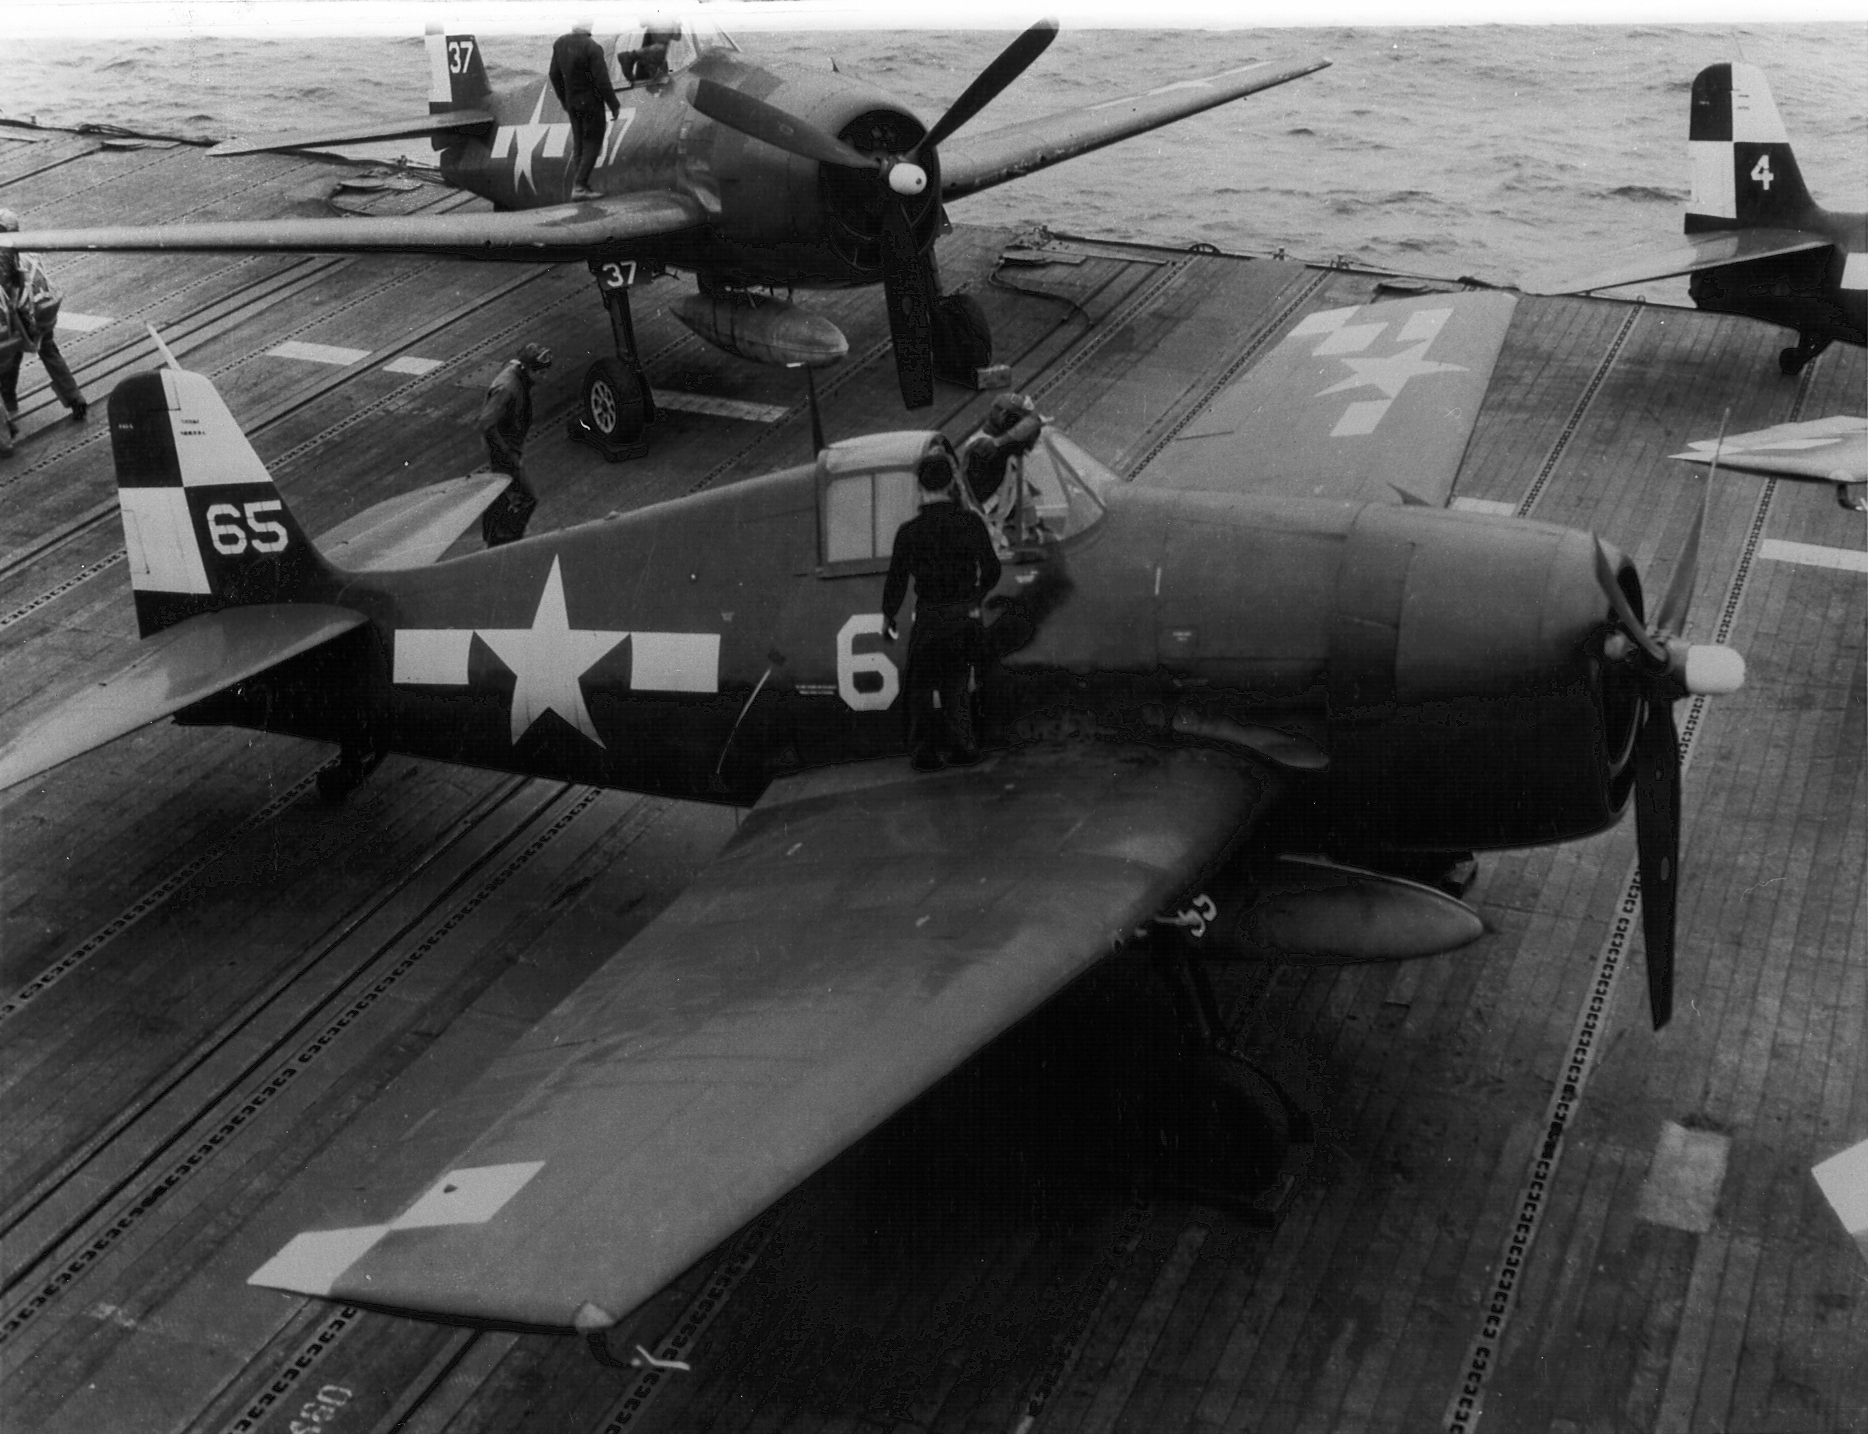 Grumman F6F 5 Hellcat VF 17 White 65 White 37 preparing for launch USS Hornet 1945 01